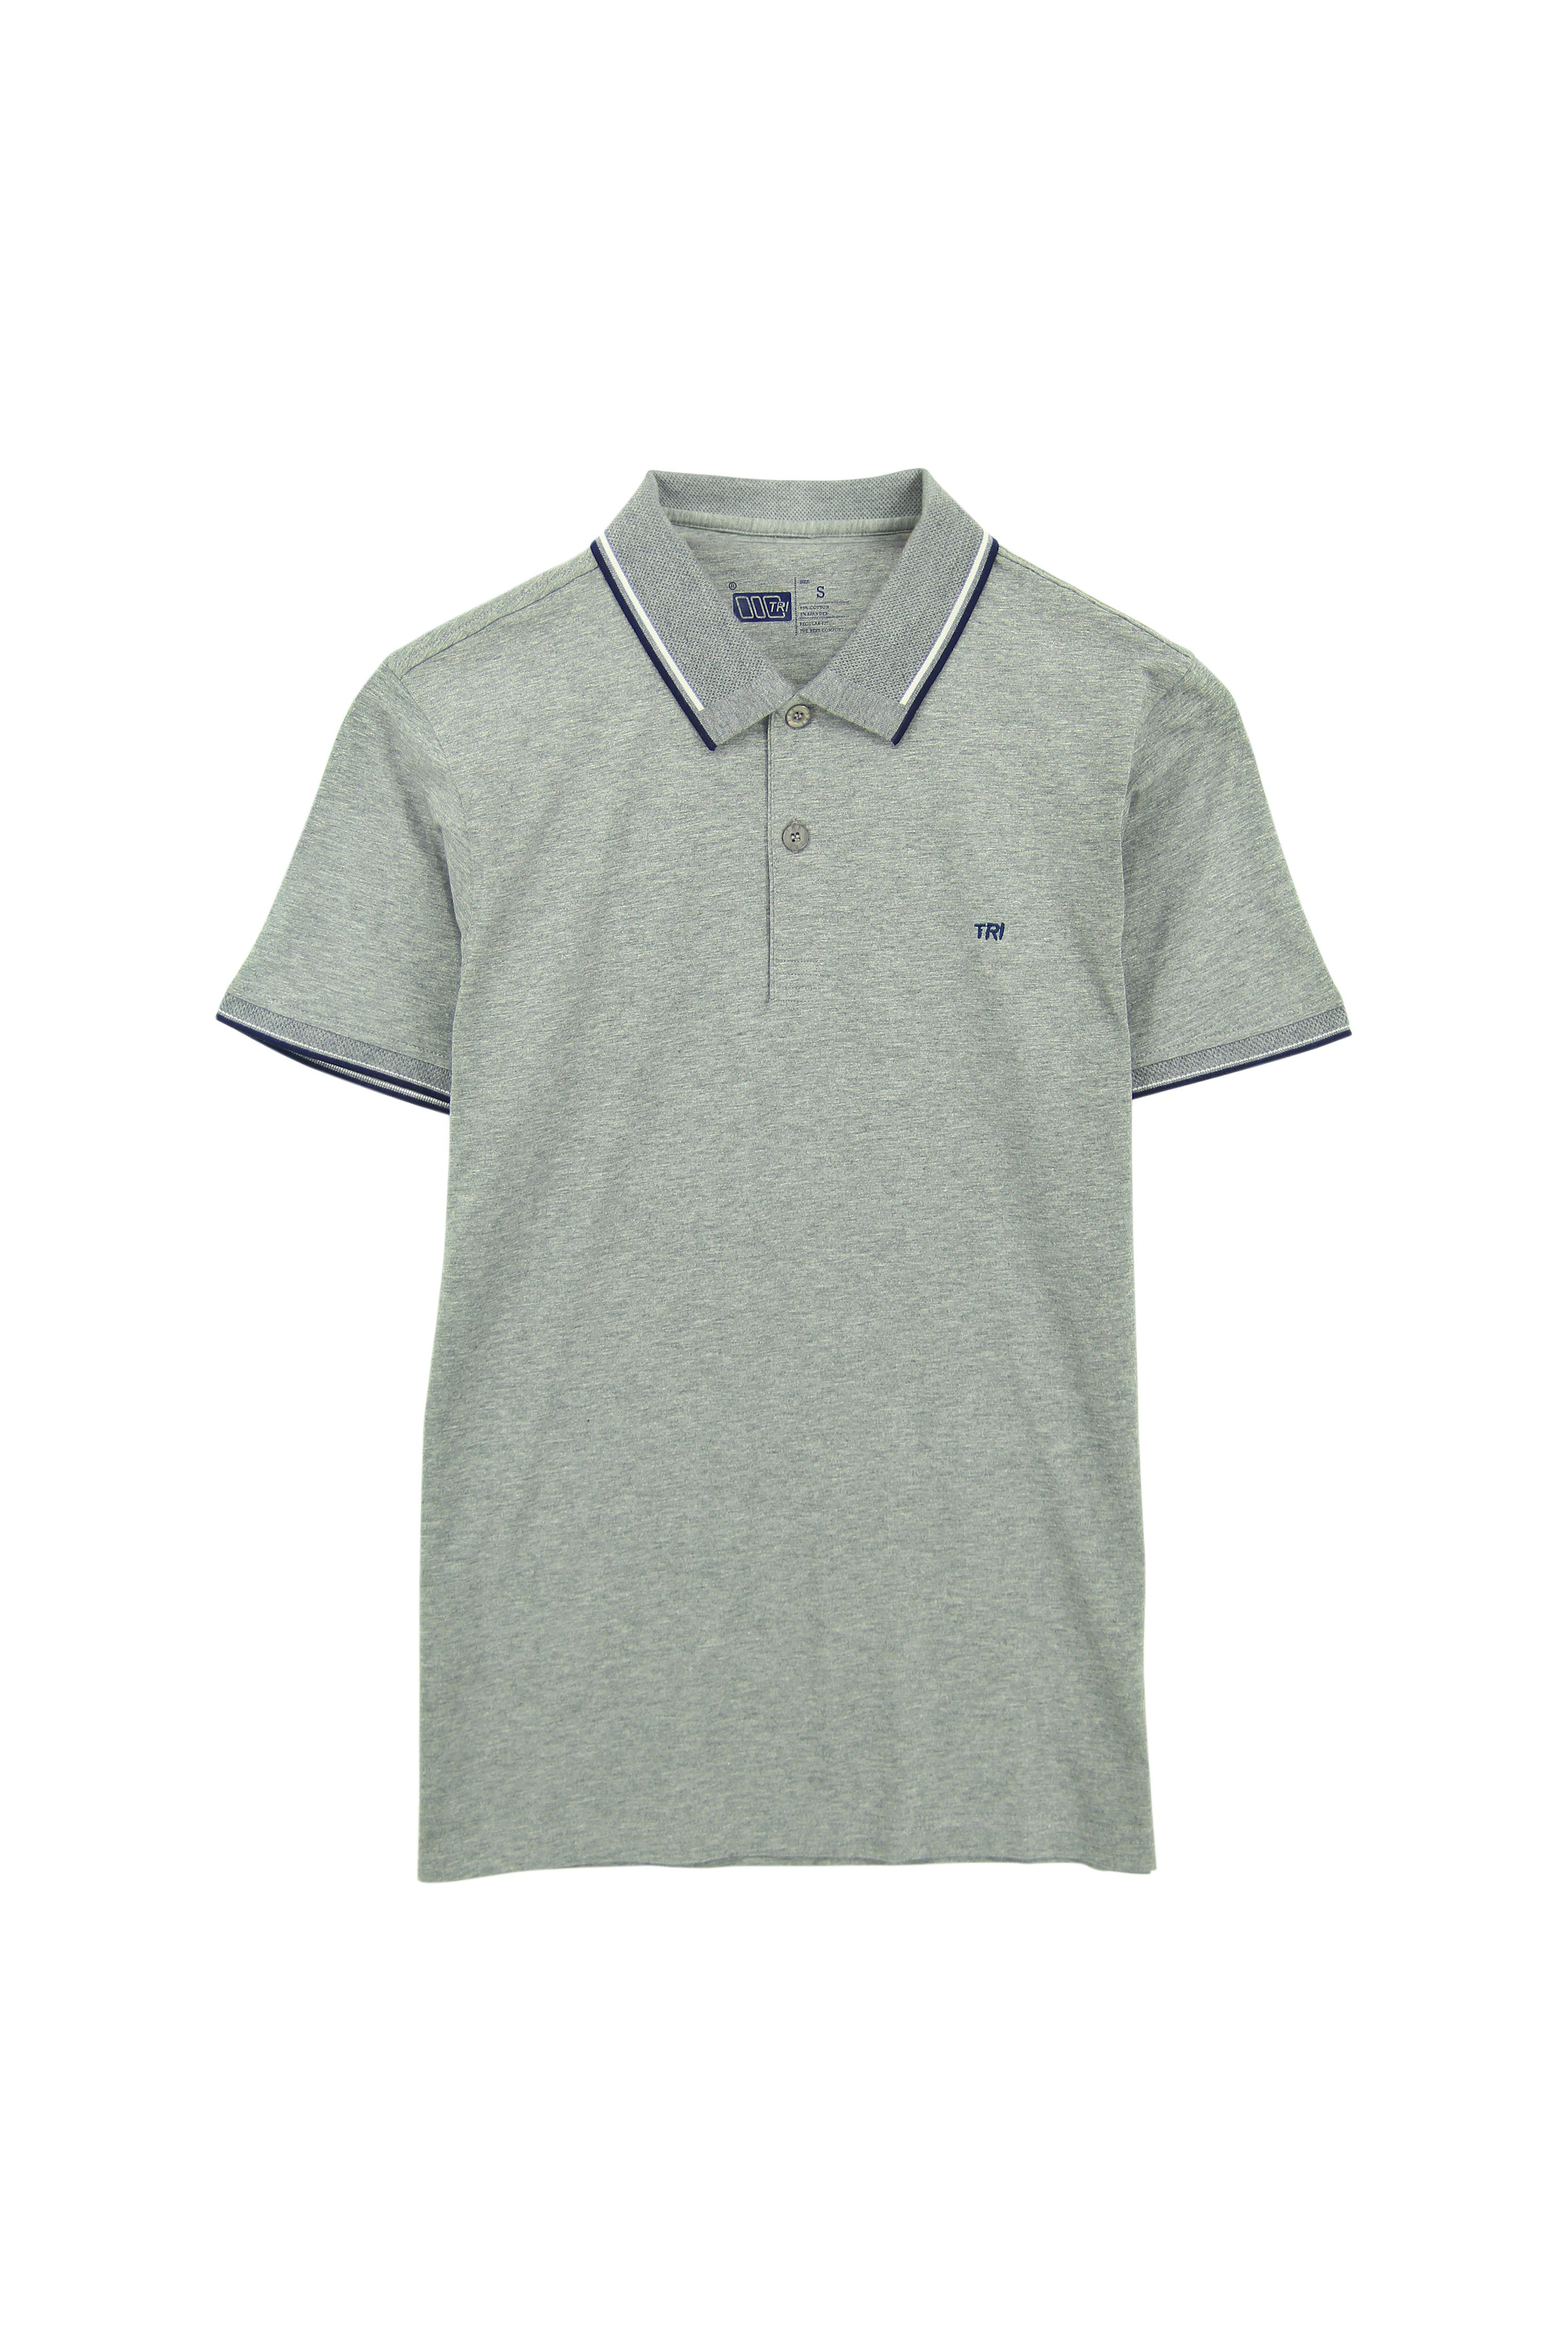 TRI Original Cotton Polo Shirt M-8092